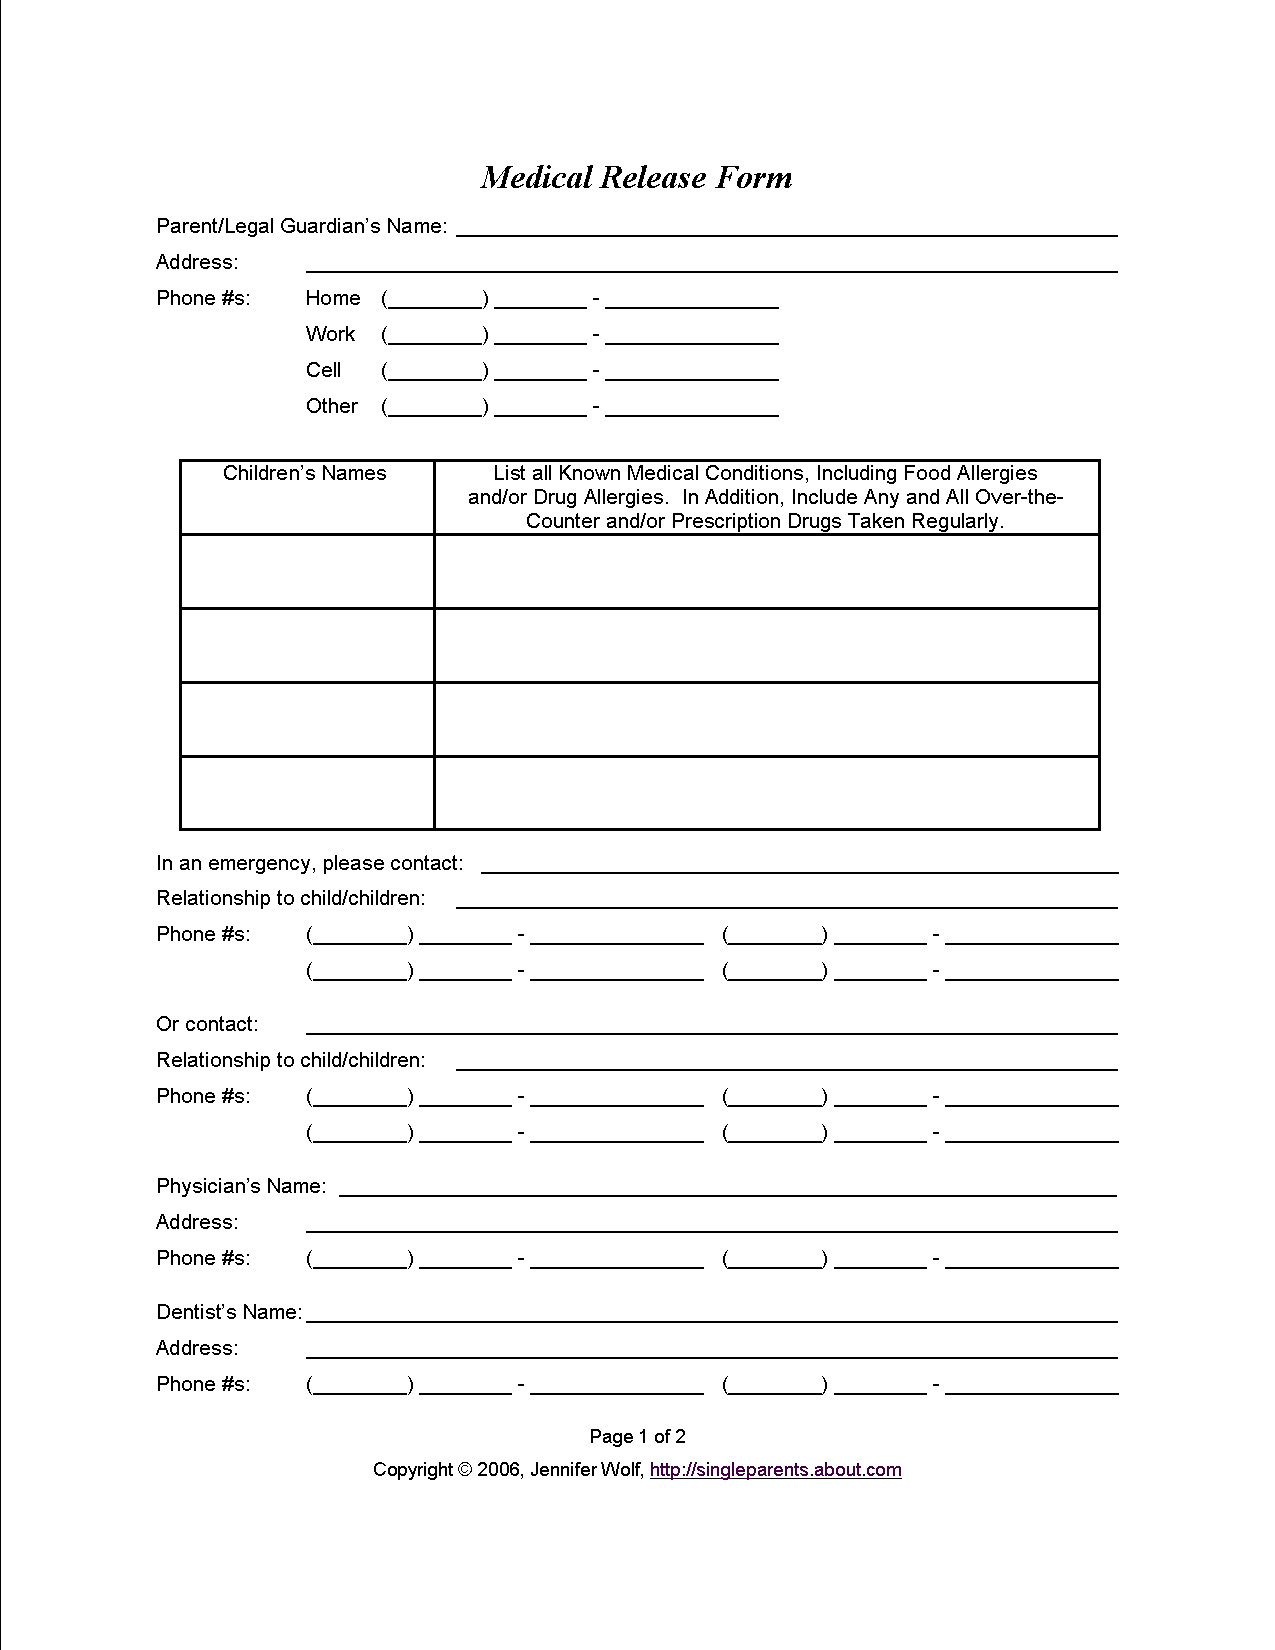 Free Medical Release form Medical Consent form when You Might Need E